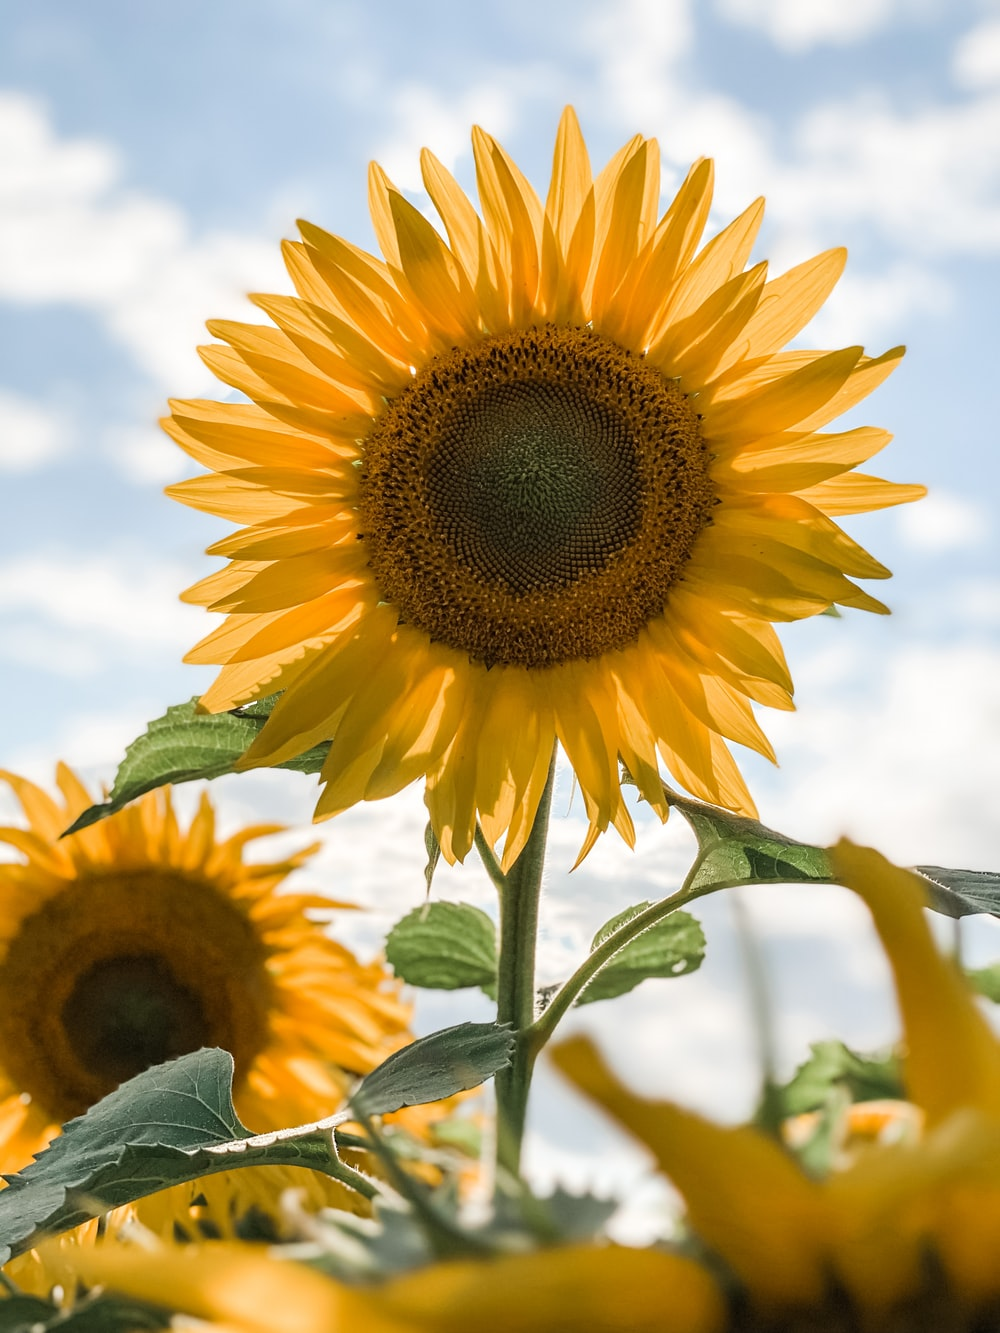 sunflower in close up photography during daytime